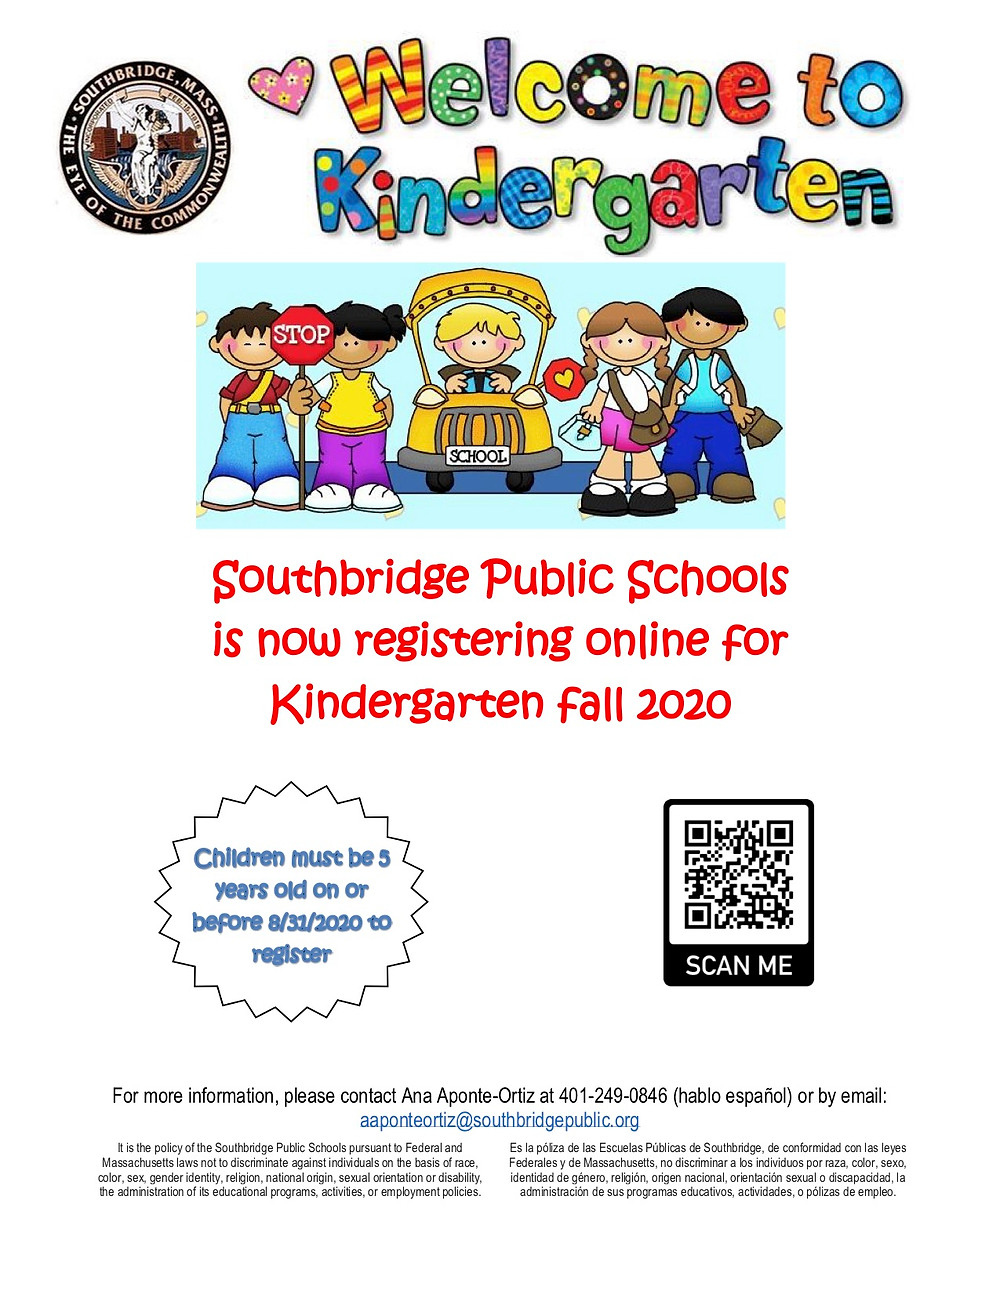 Kindergarten Flyer in English.  All information on the flyer is also in the body of the blog post.